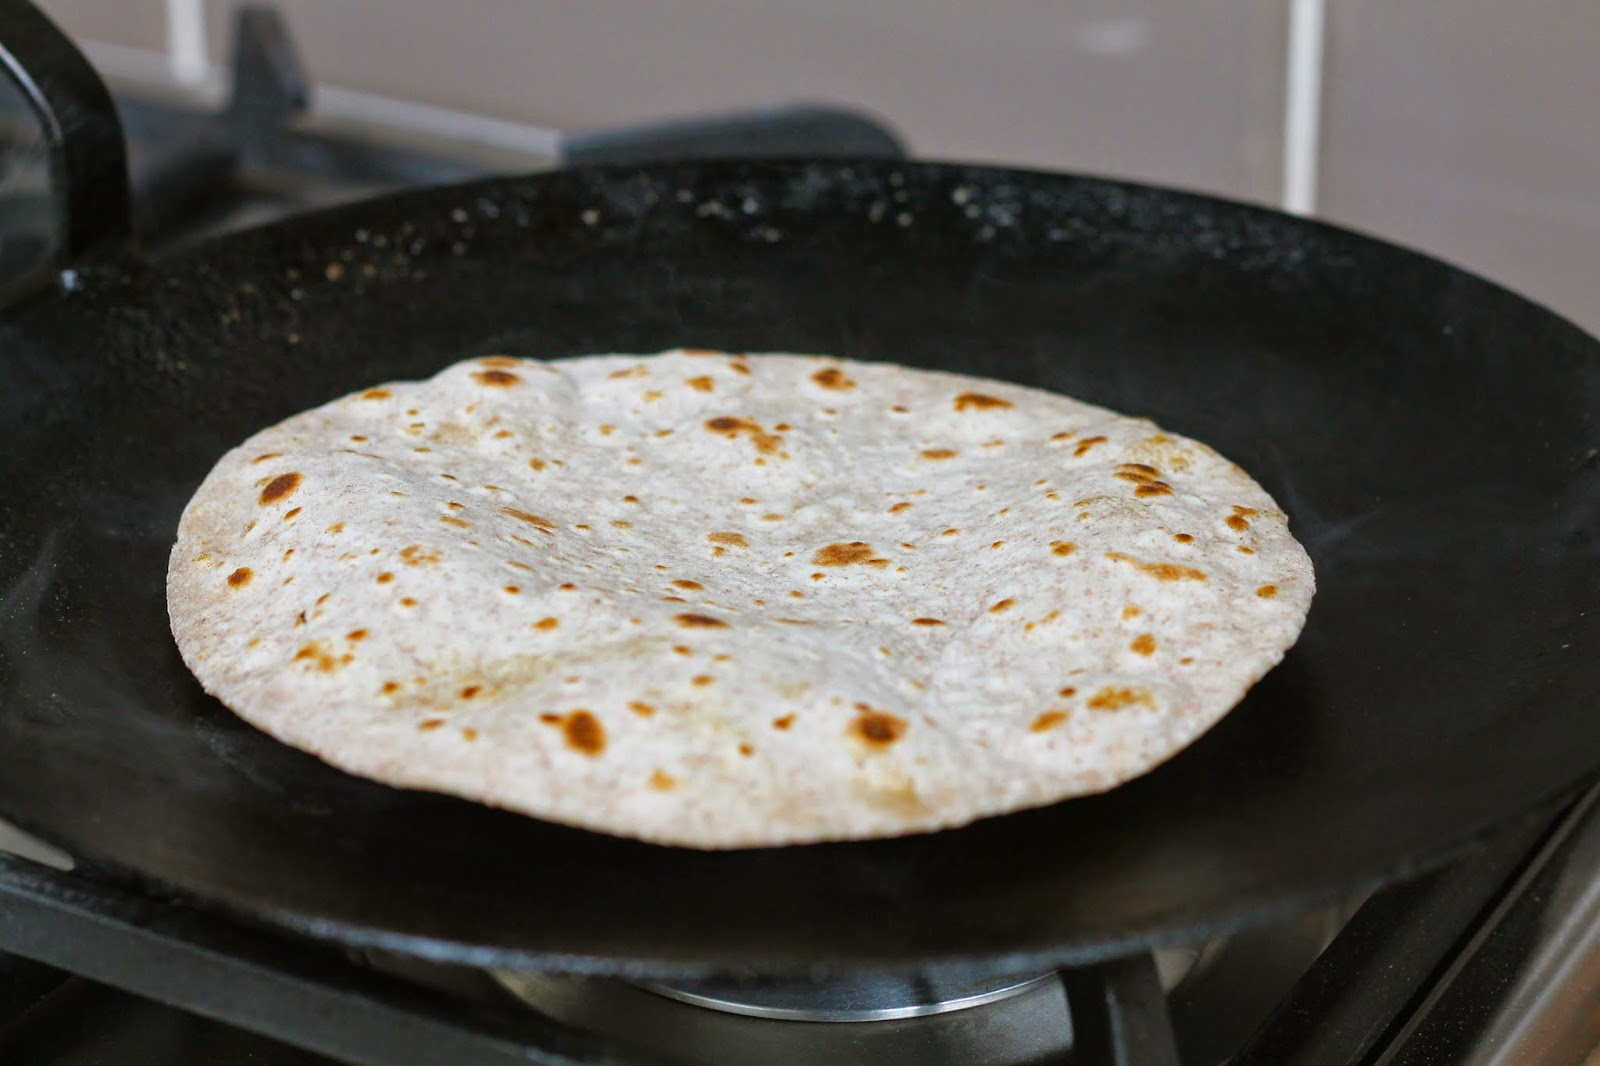 Roti cooking on the stove